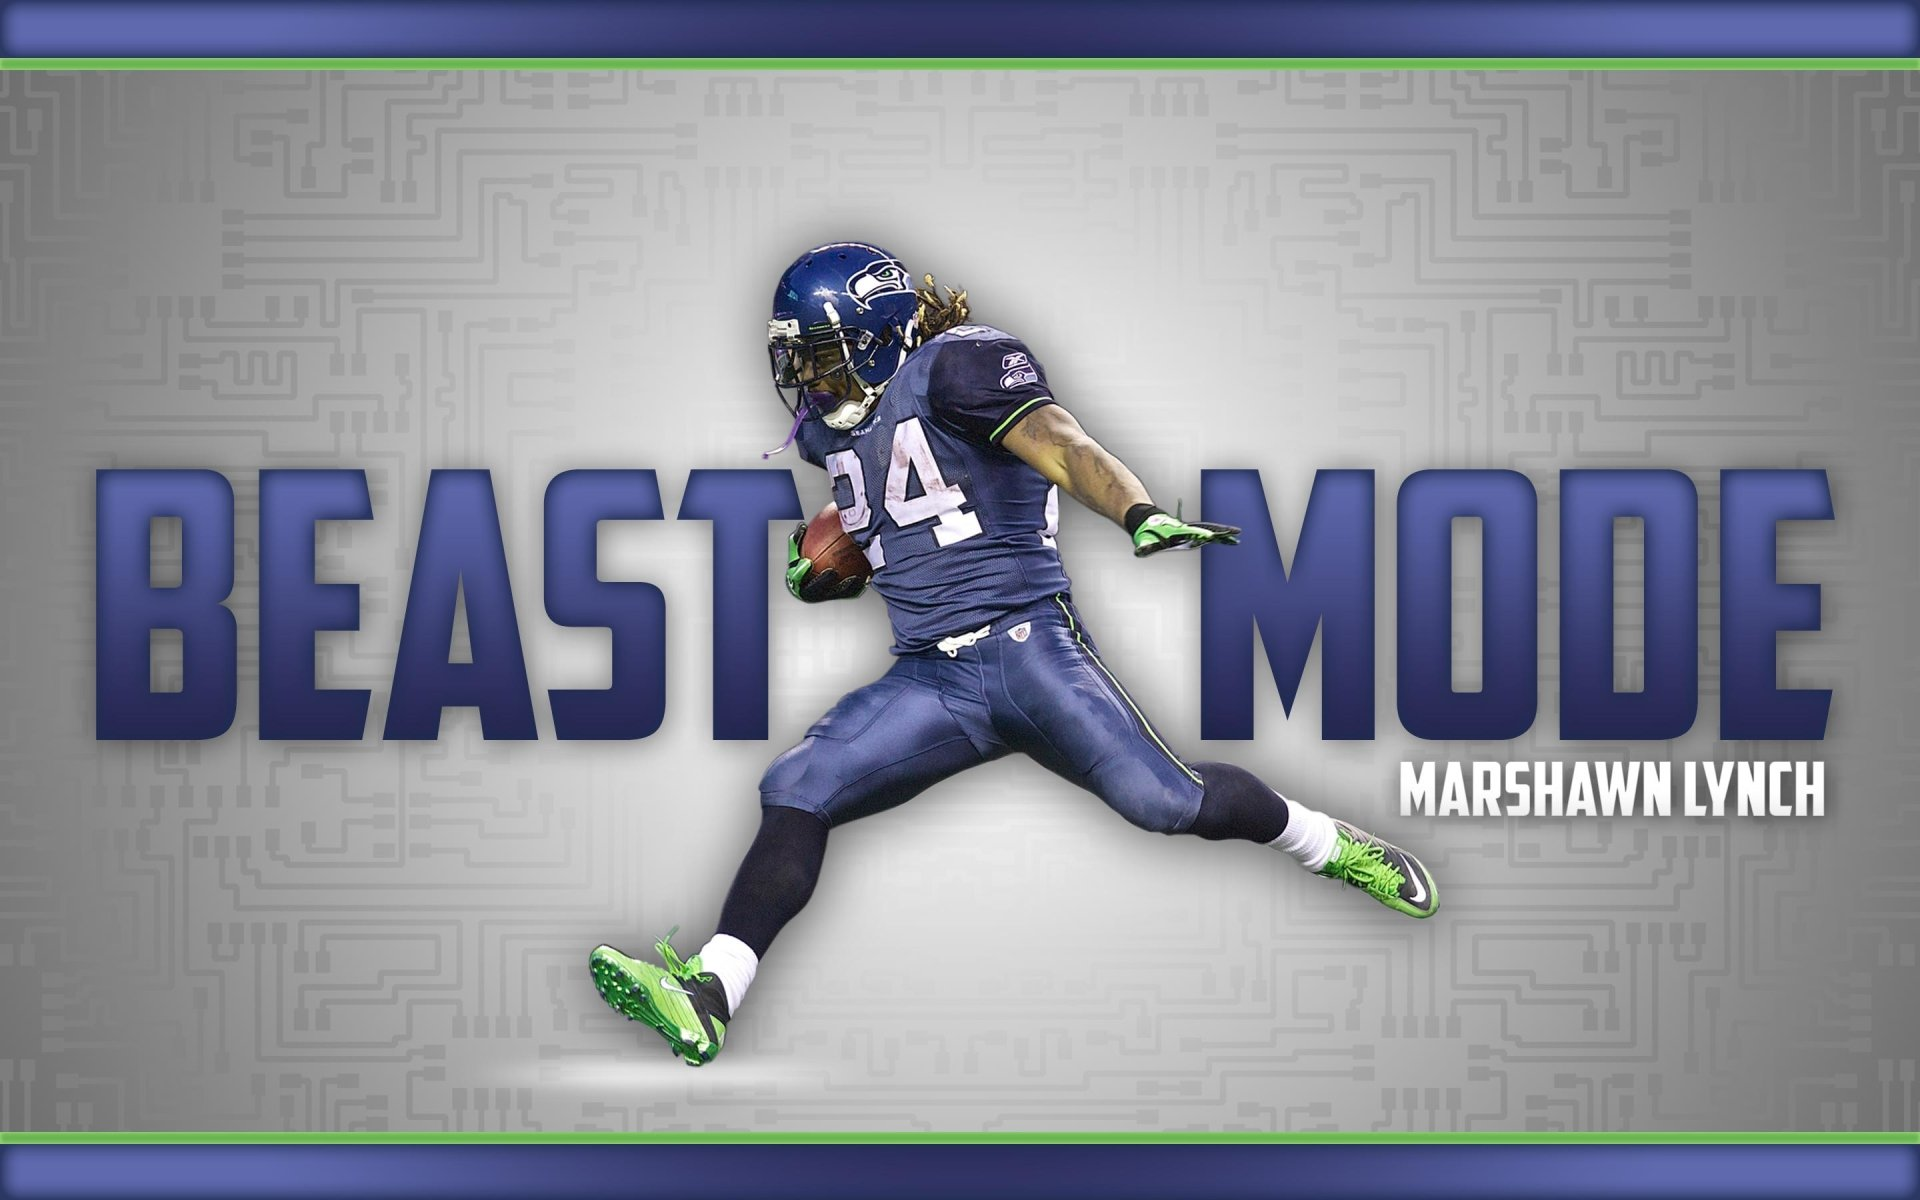 Seahawks Wallpaper Iphone X Seattle Seahawks Full Hd Wallpaper And Background Image